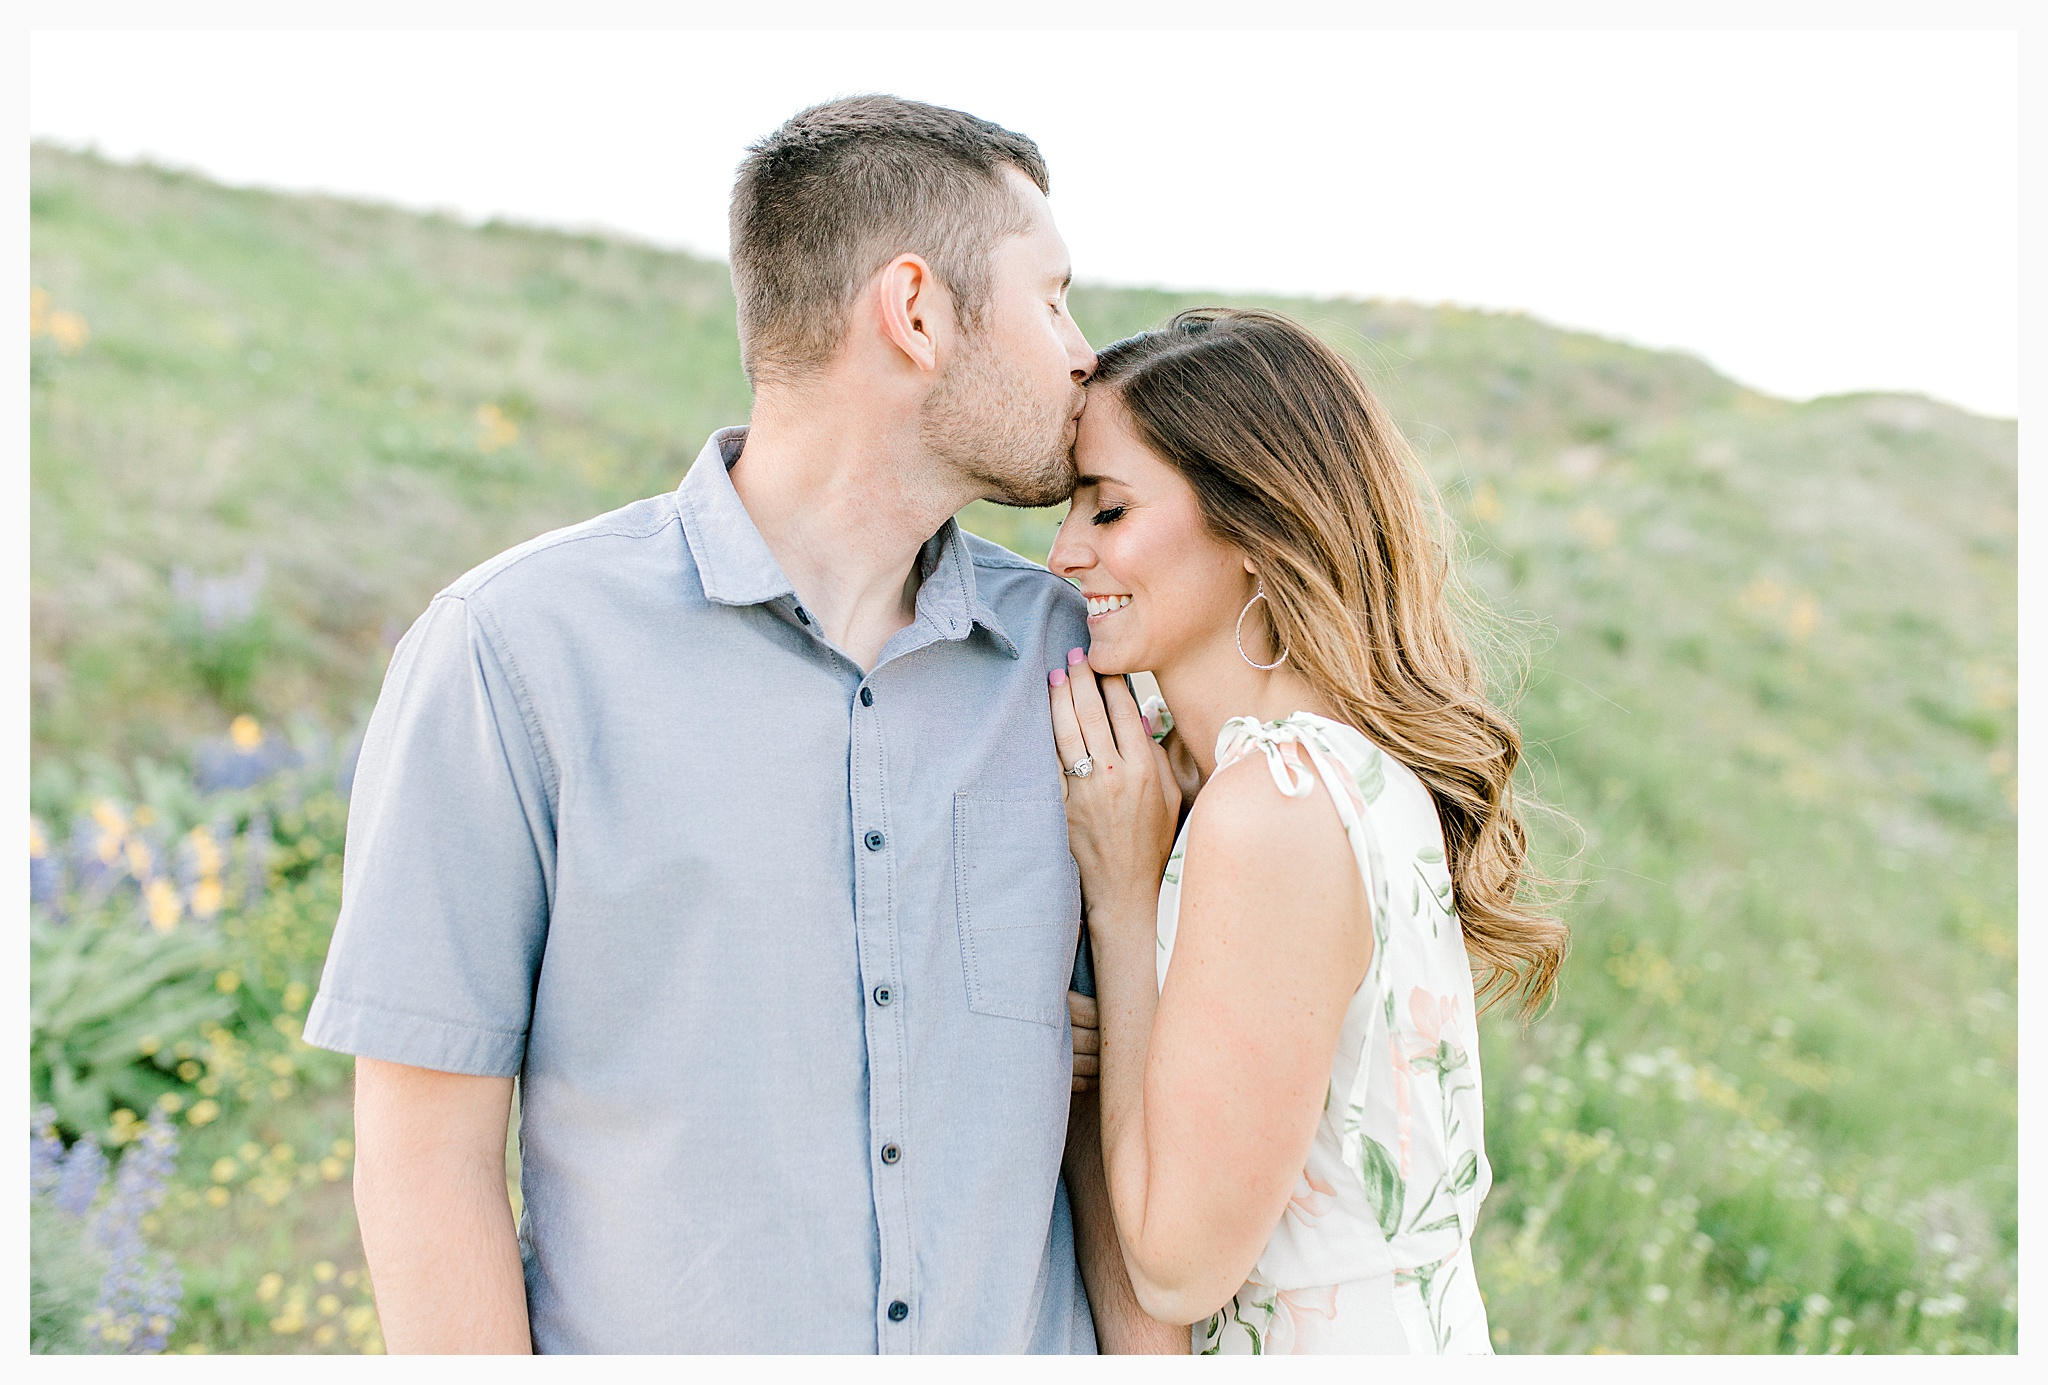 Engagement session amongst the wildflowers in Wenatchee, Washington | Engagement Session Outfit Inspiration for Wedding Photography with Emma Rose Company | Light and Airy PNW Photographer, Seattle Bride_0008.jpg